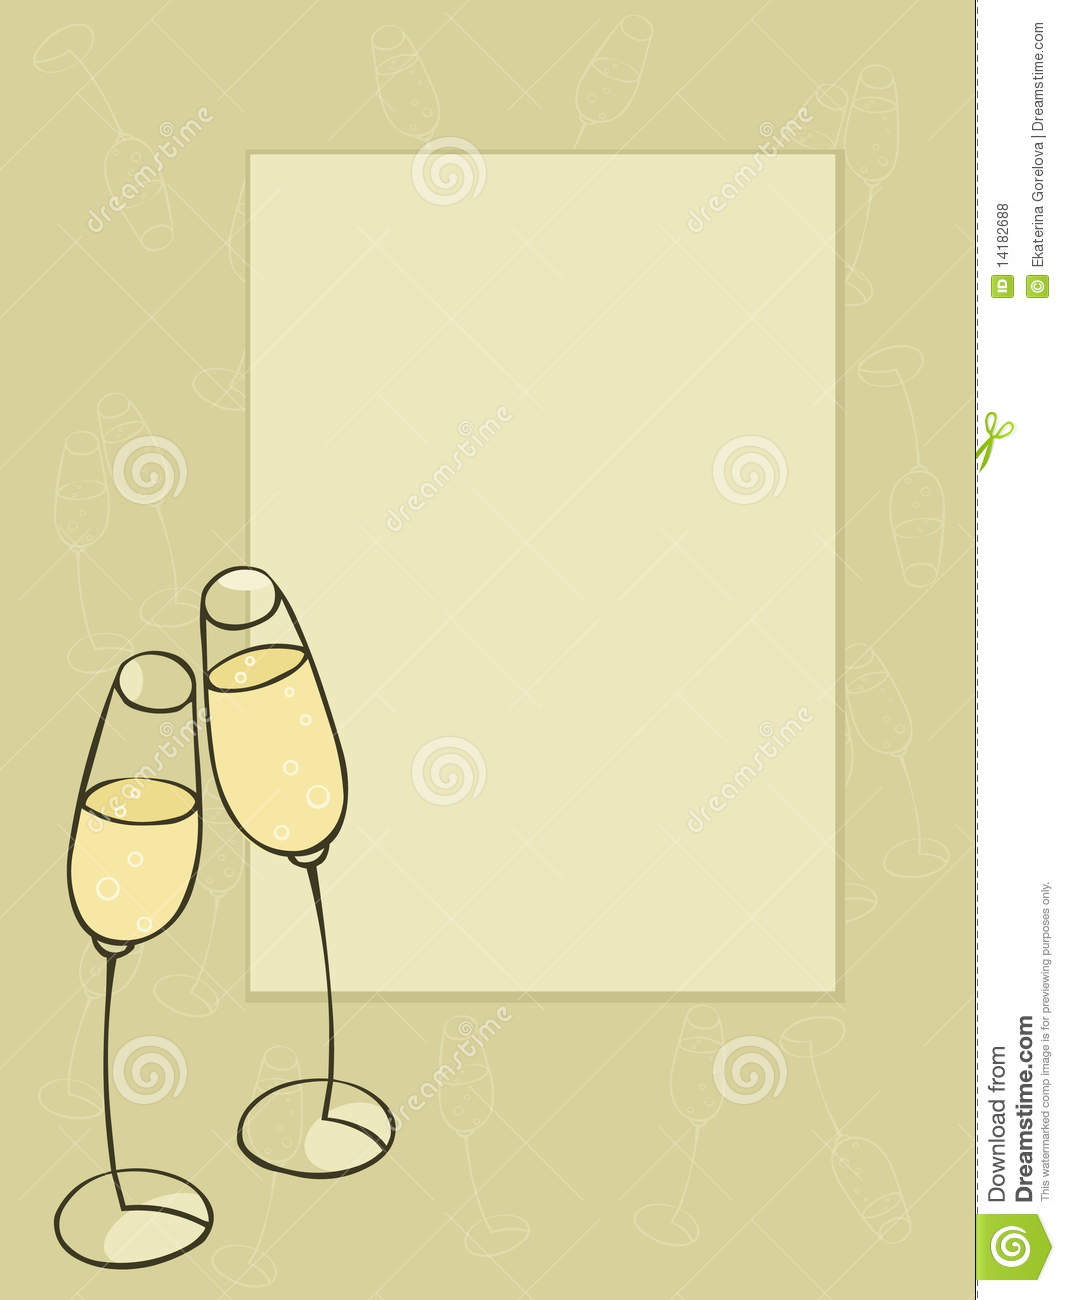 bar stock vector. illustration of alcohol, glasses, drawing - 14182688